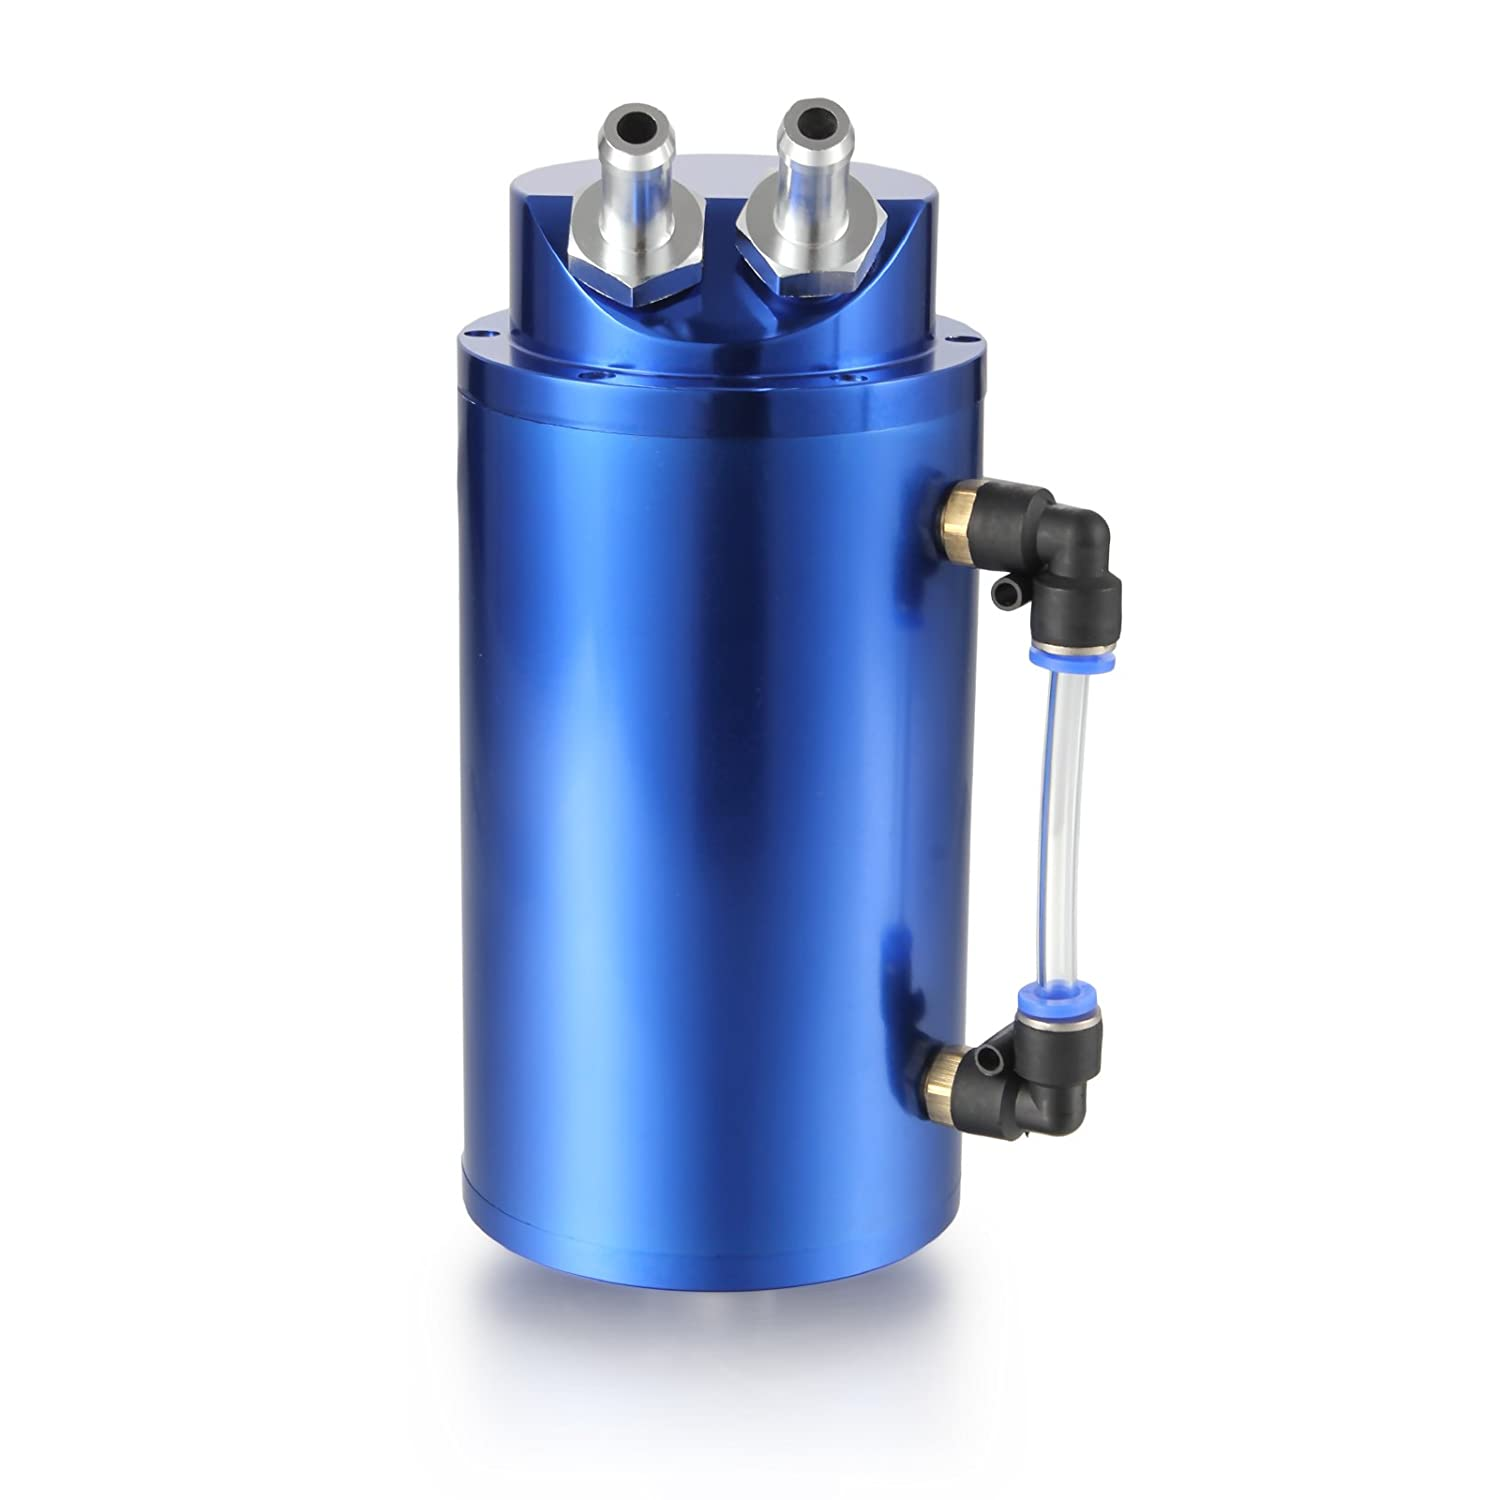 Dromedary Blue Aluminum Oil Reservoir Catch Can Tank Kit Breather Filter Baffled Dromedary Autoparts